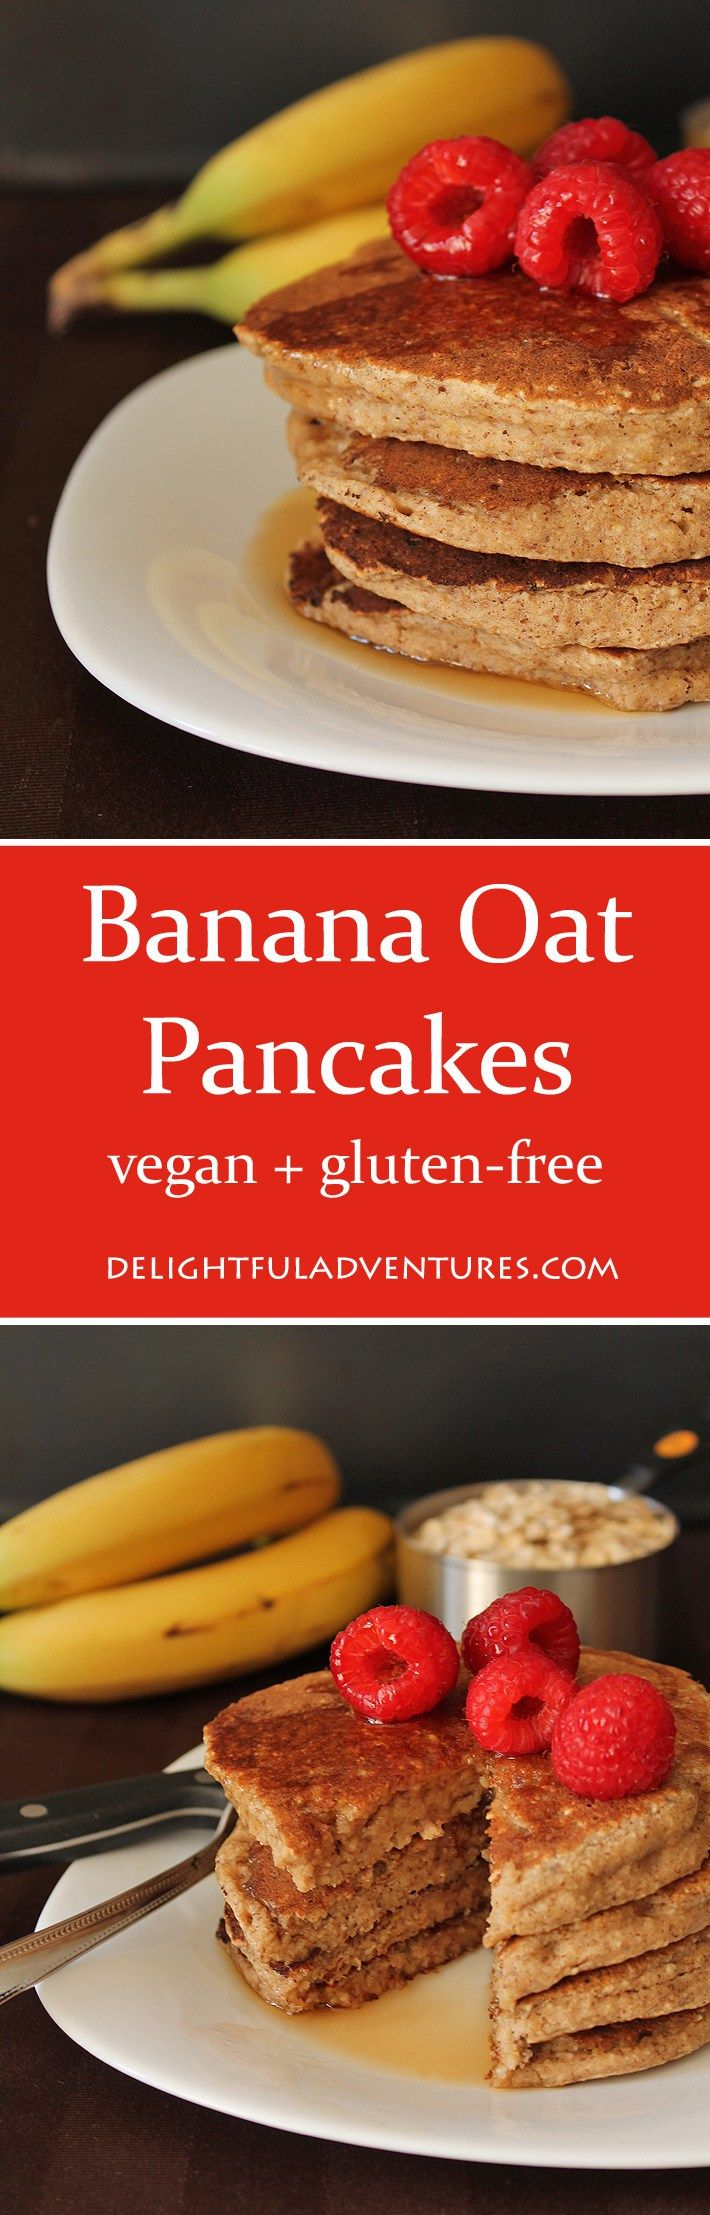 These easy vegan, gluten-free, banana oat pancakes will become your new favourite weekend breakfast.